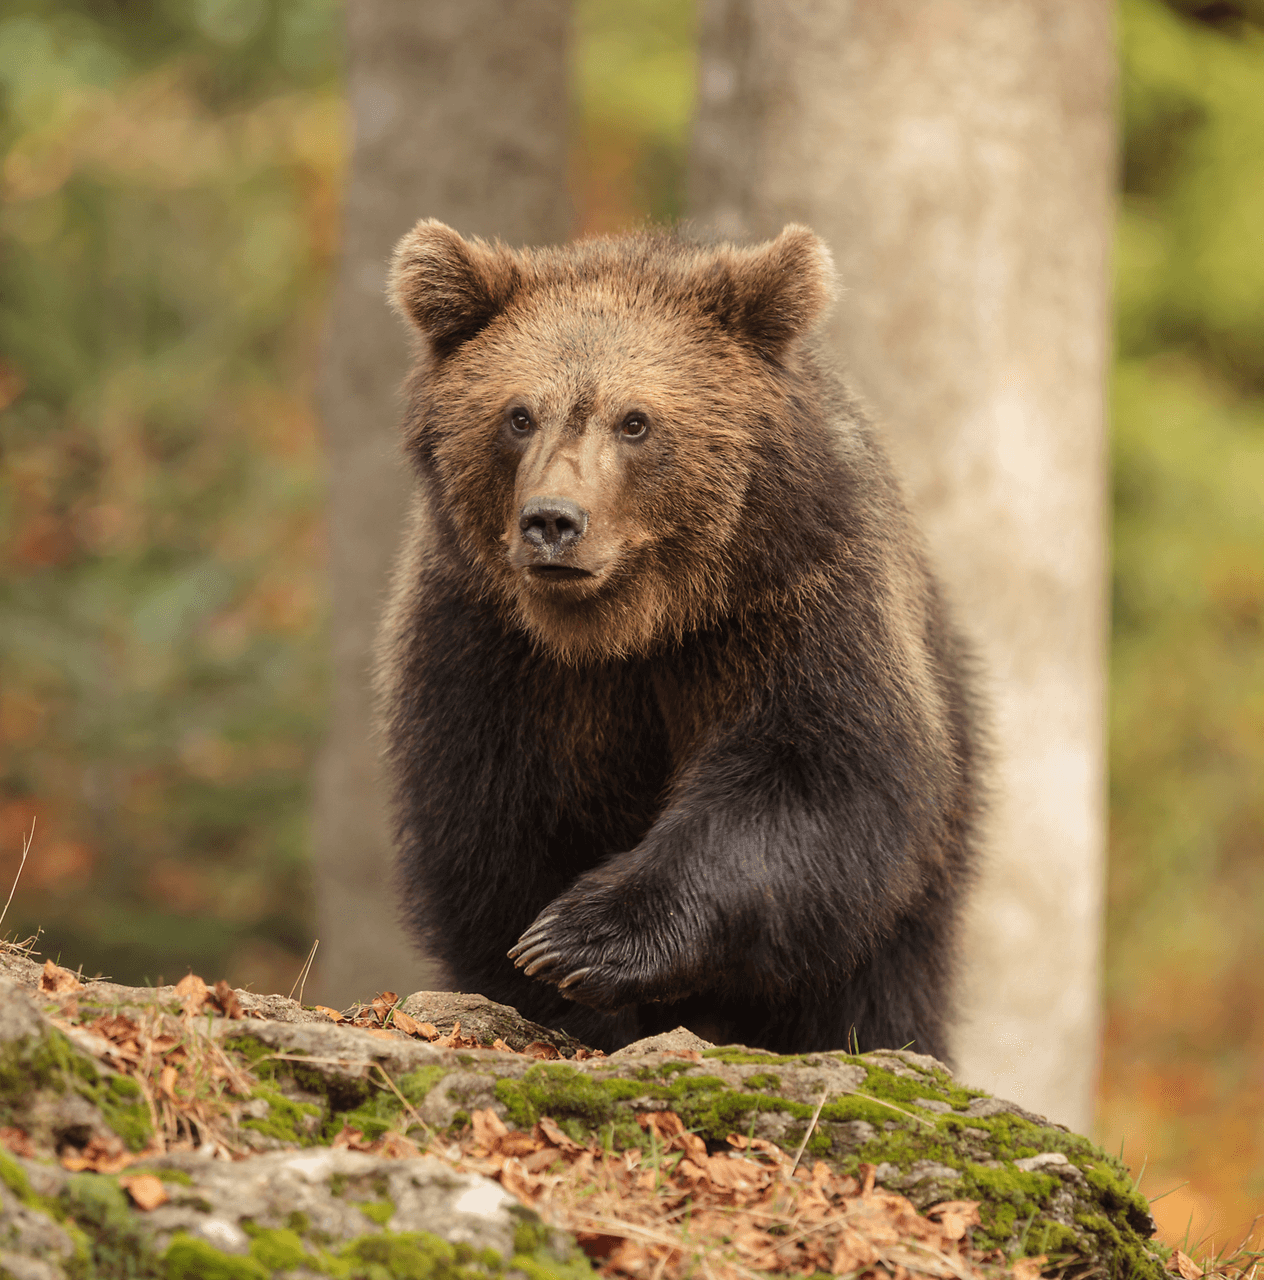 Young brown bear walking through the forest.